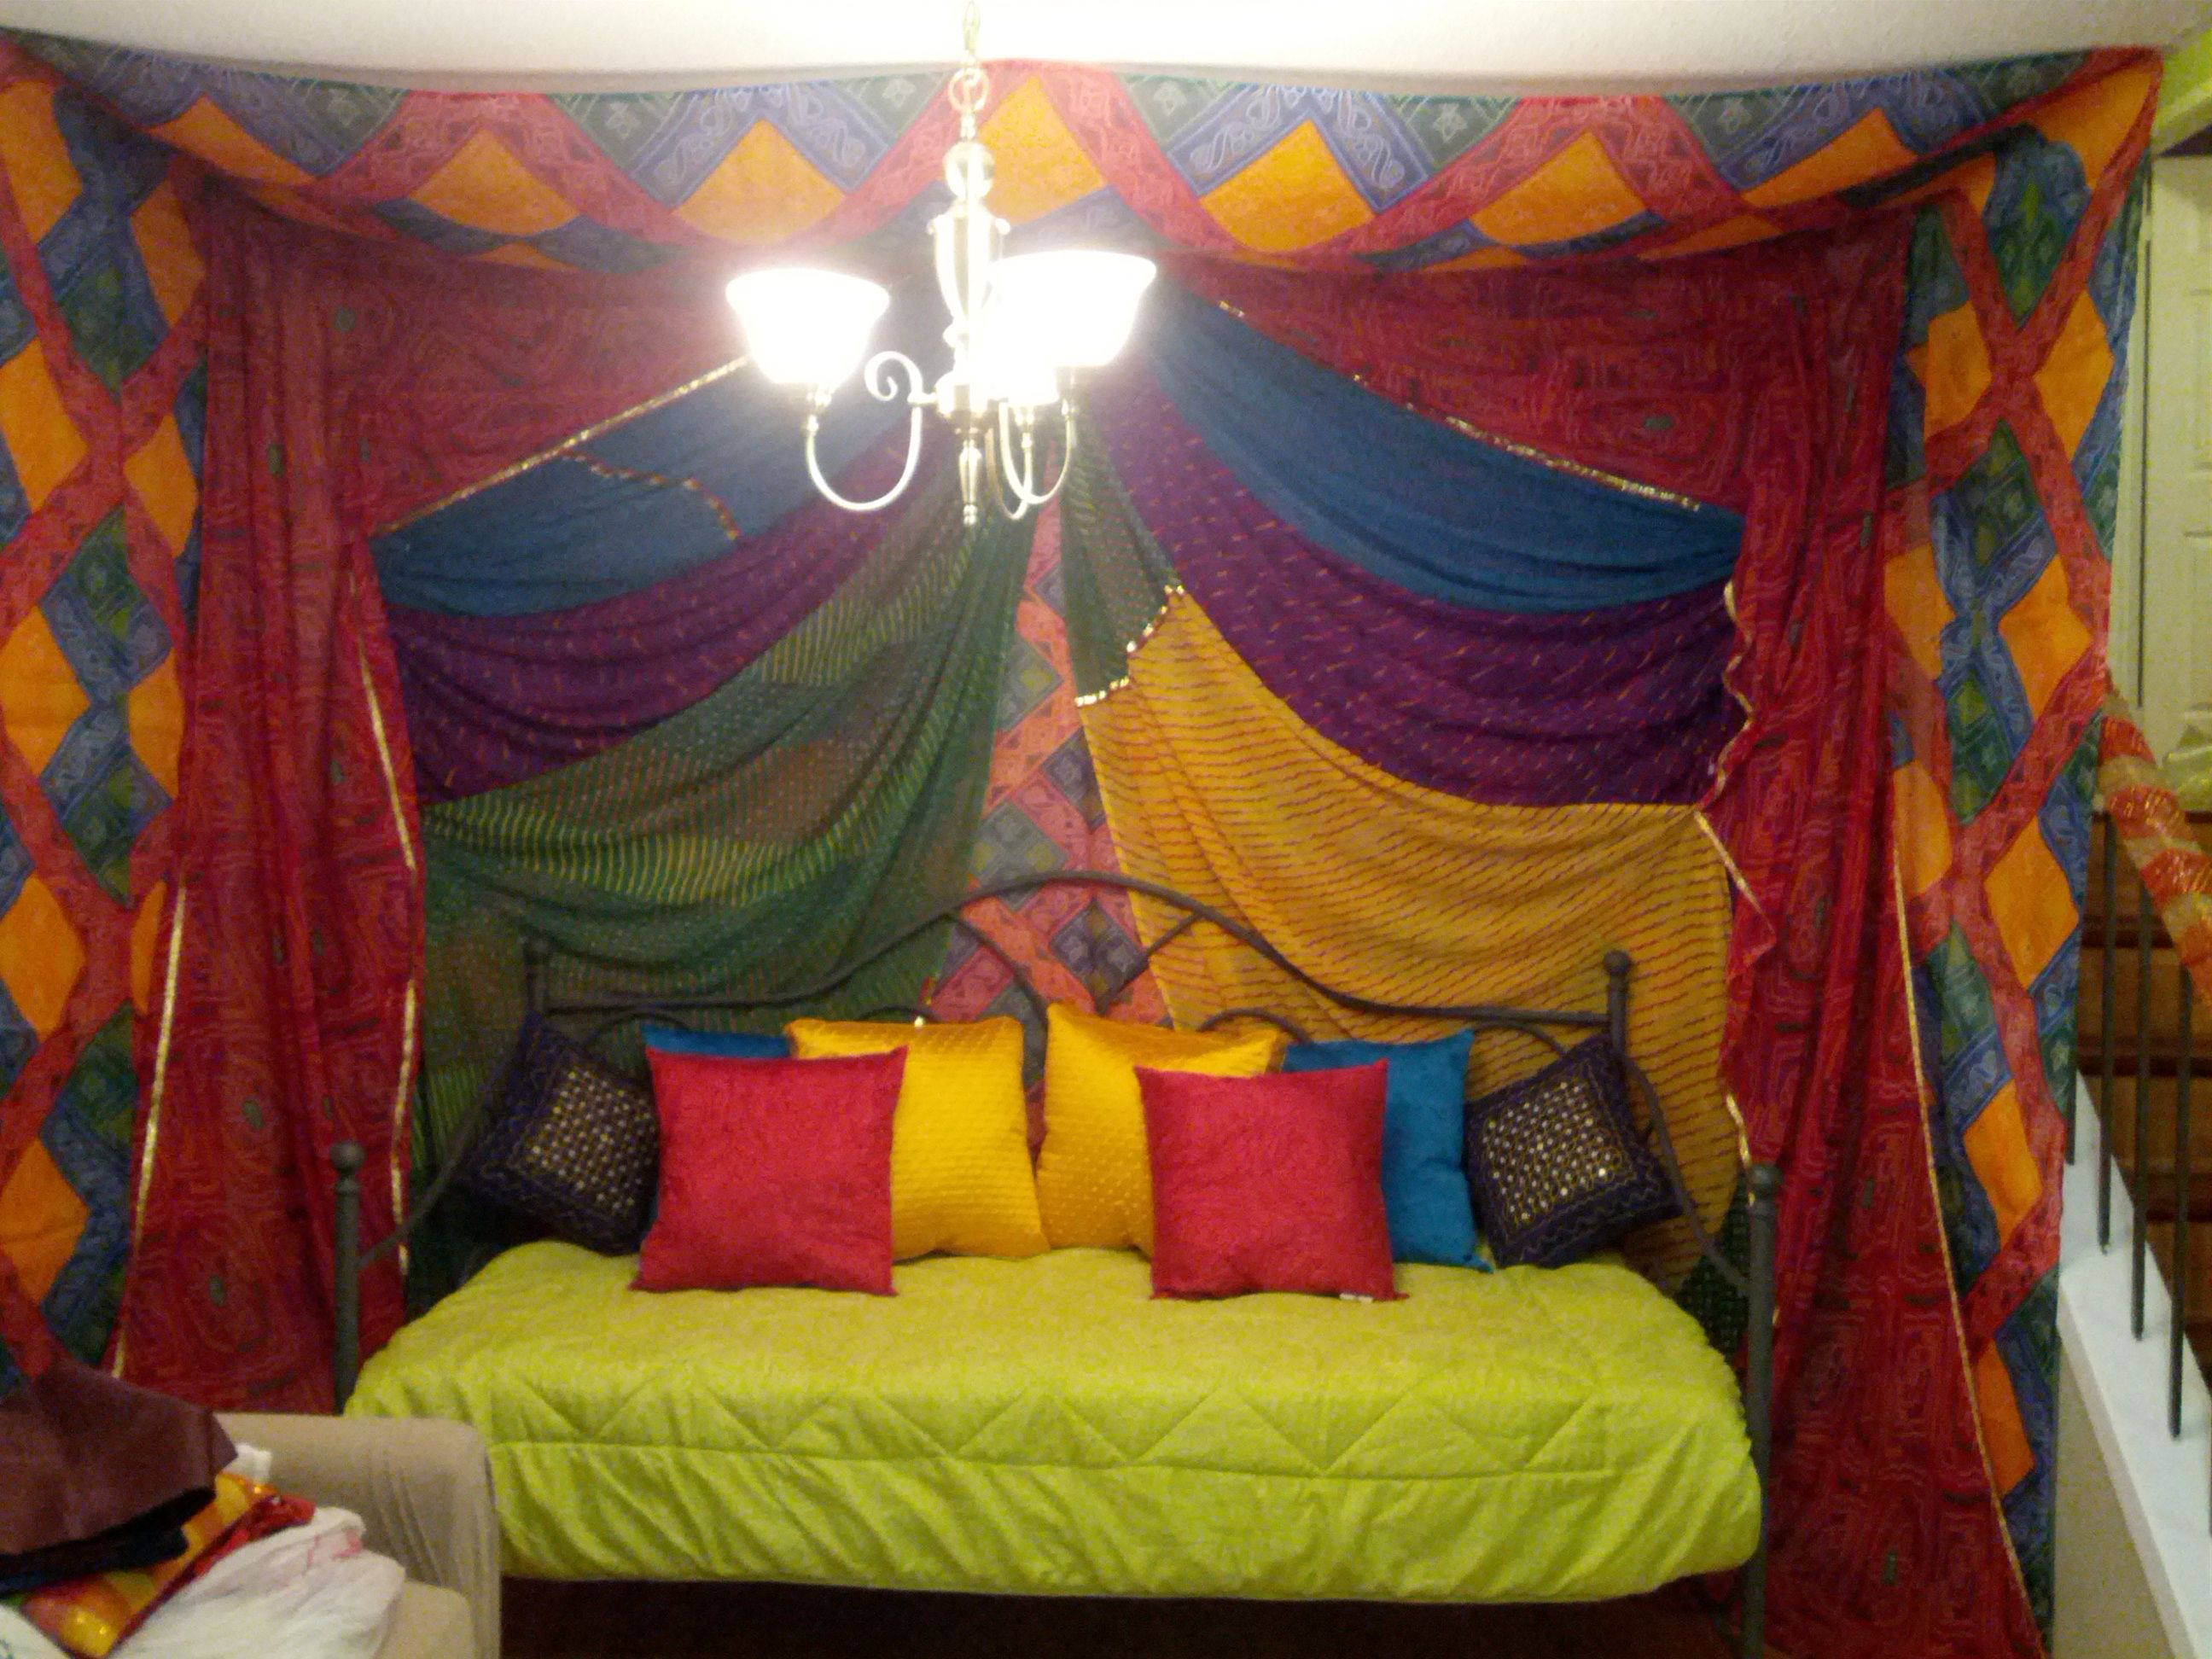 Indian wedding decor at home for a rajasthani inspired henna event wedding home decorations indian junglespirit Choice Image